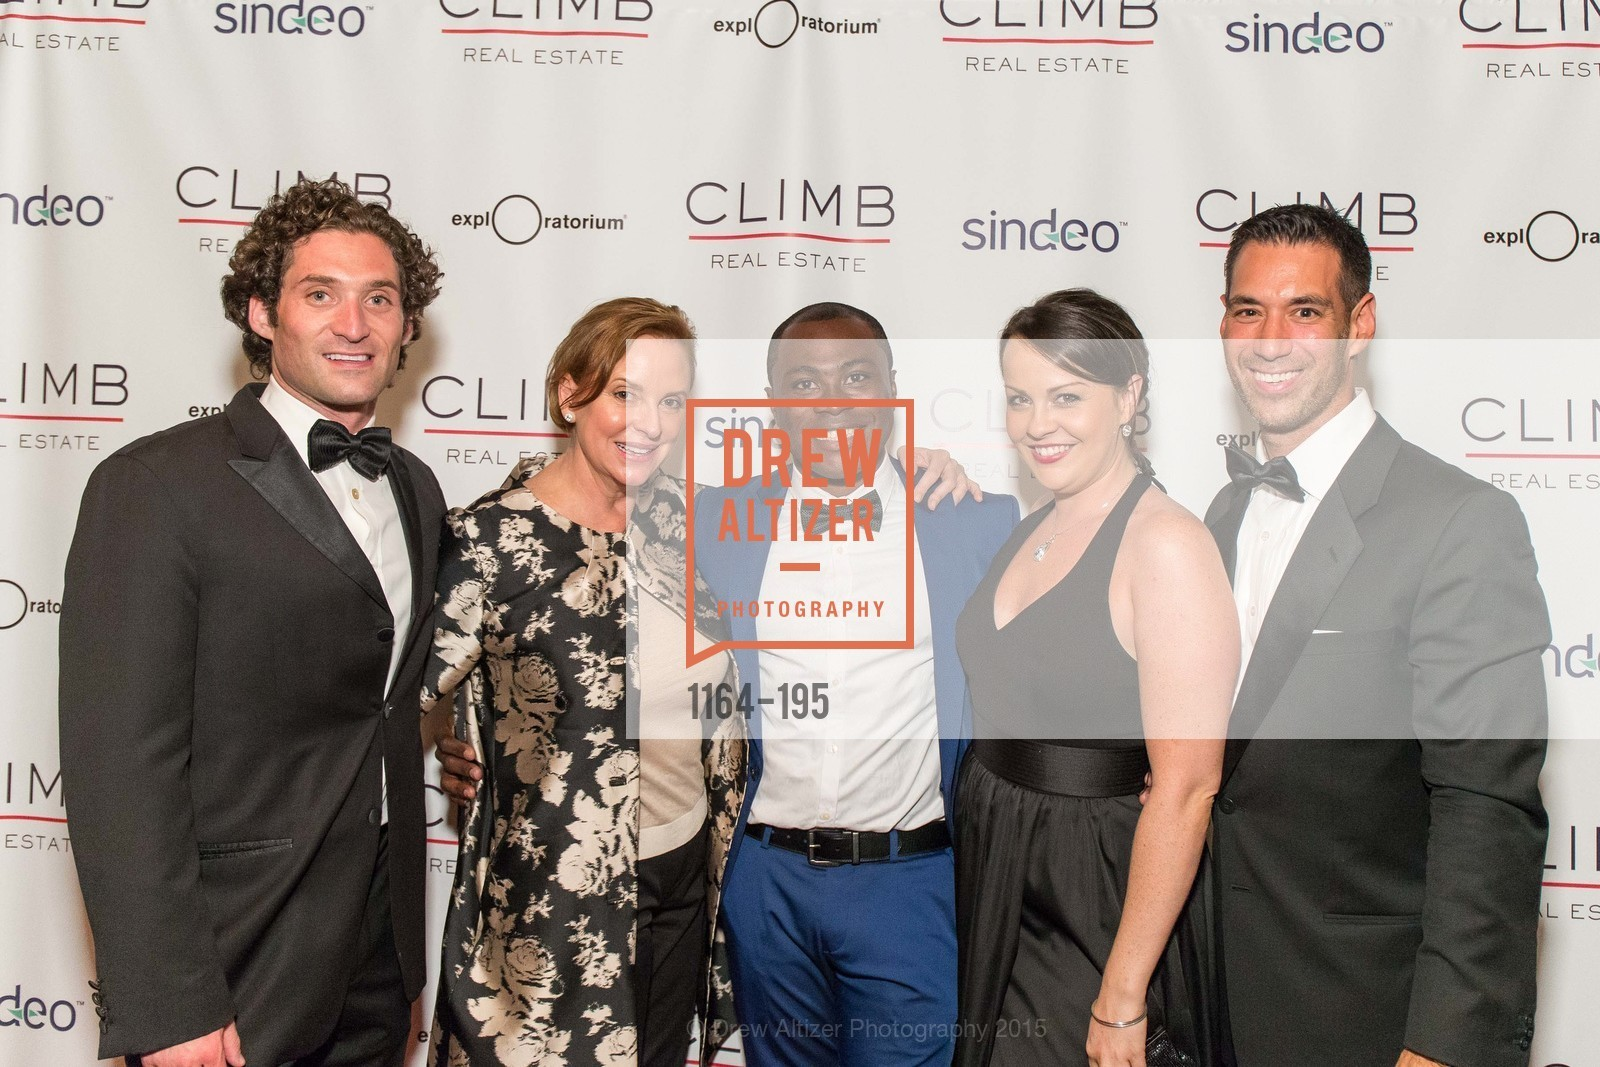 Justin Fichelson, Lynn Bell, Cedric Chante, Chris Lim, Climb Real Estate and Sindeo Celebrate the Launch of Million Dollar Listing San Francisco, Local Edition San Francisco. 691 Market St, July 8th, 2015,Drew Altizer, Drew Altizer Photography, full-service agency, private events, San Francisco photographer, photographer california